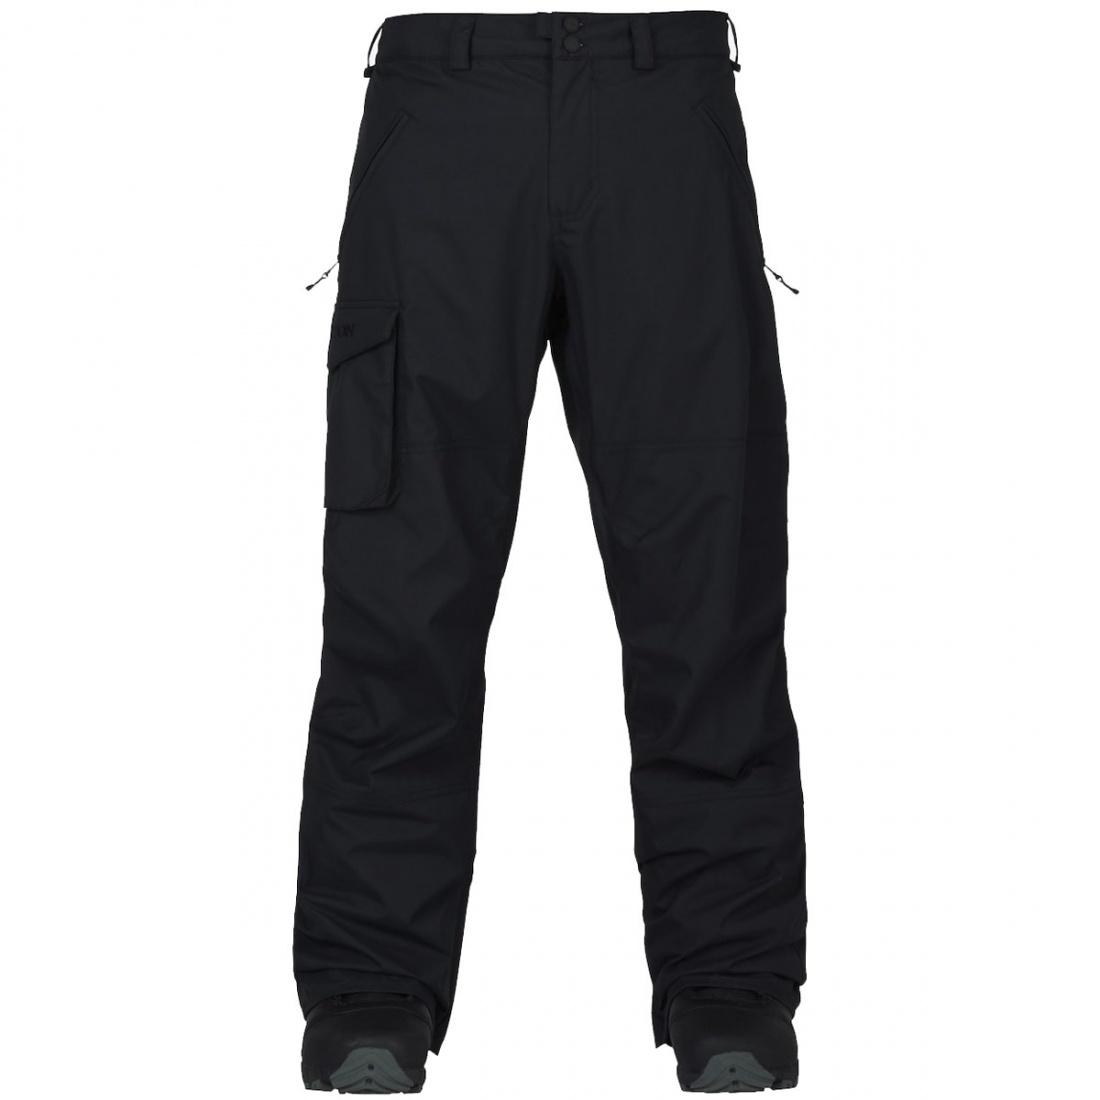 Burton Штаны для сноуборда Burton Insulated Covert Pant TRUE BLACK S сумка для документов burton tote true black canvas